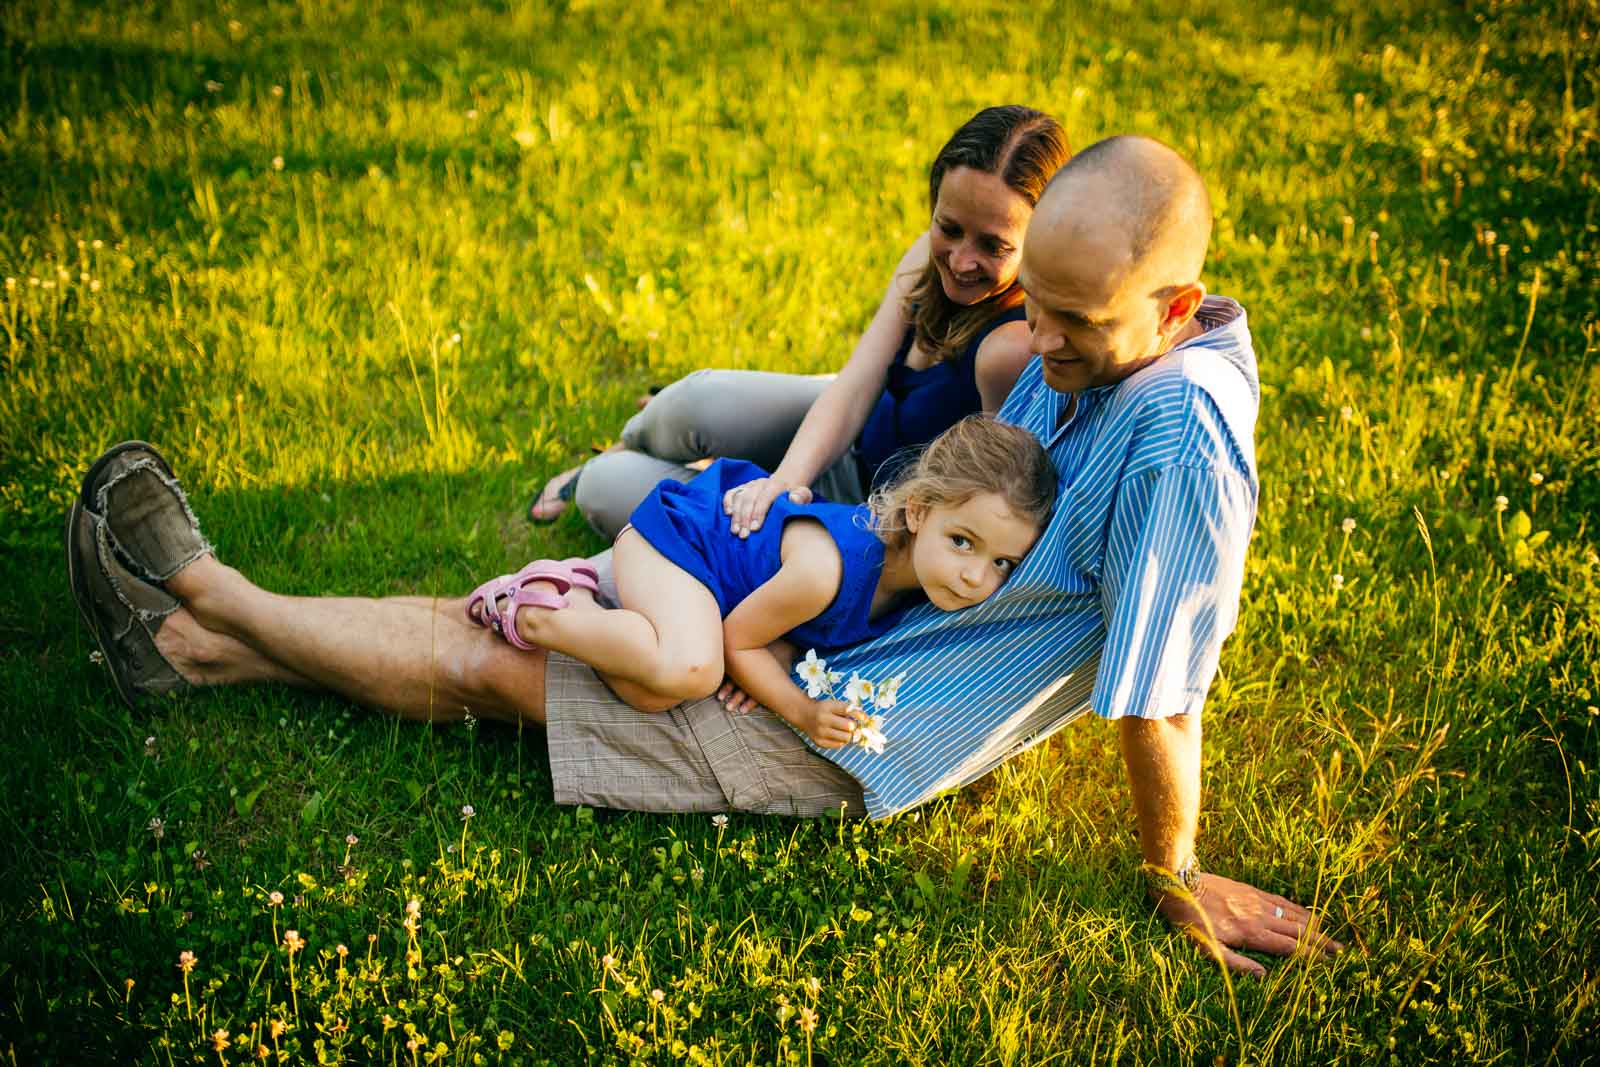 family photographers warsaw poland 23